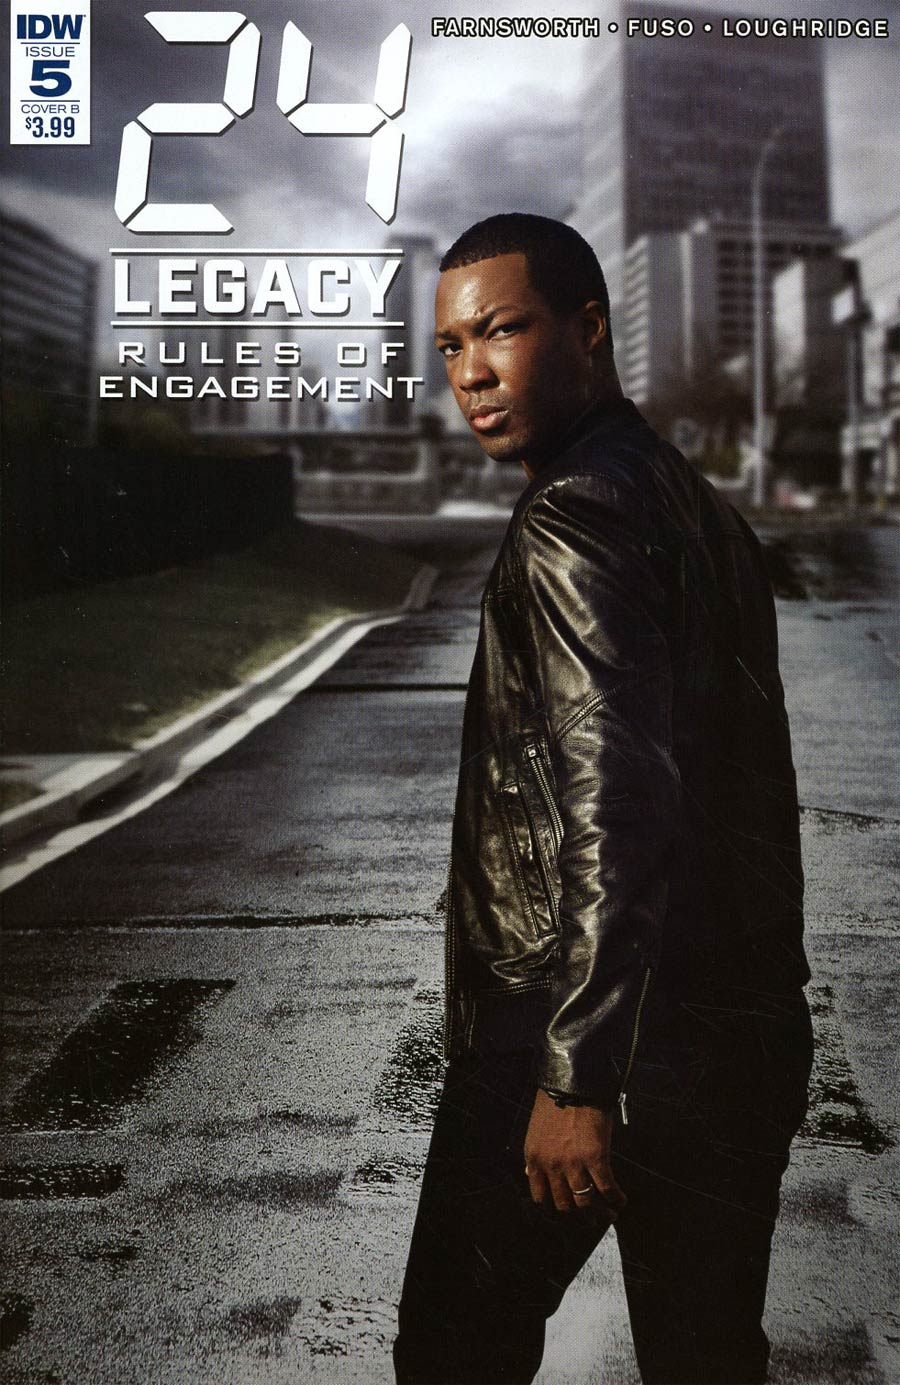 24 Legacy Rules Of Engagement #5 Cover B Variant Photo Cover